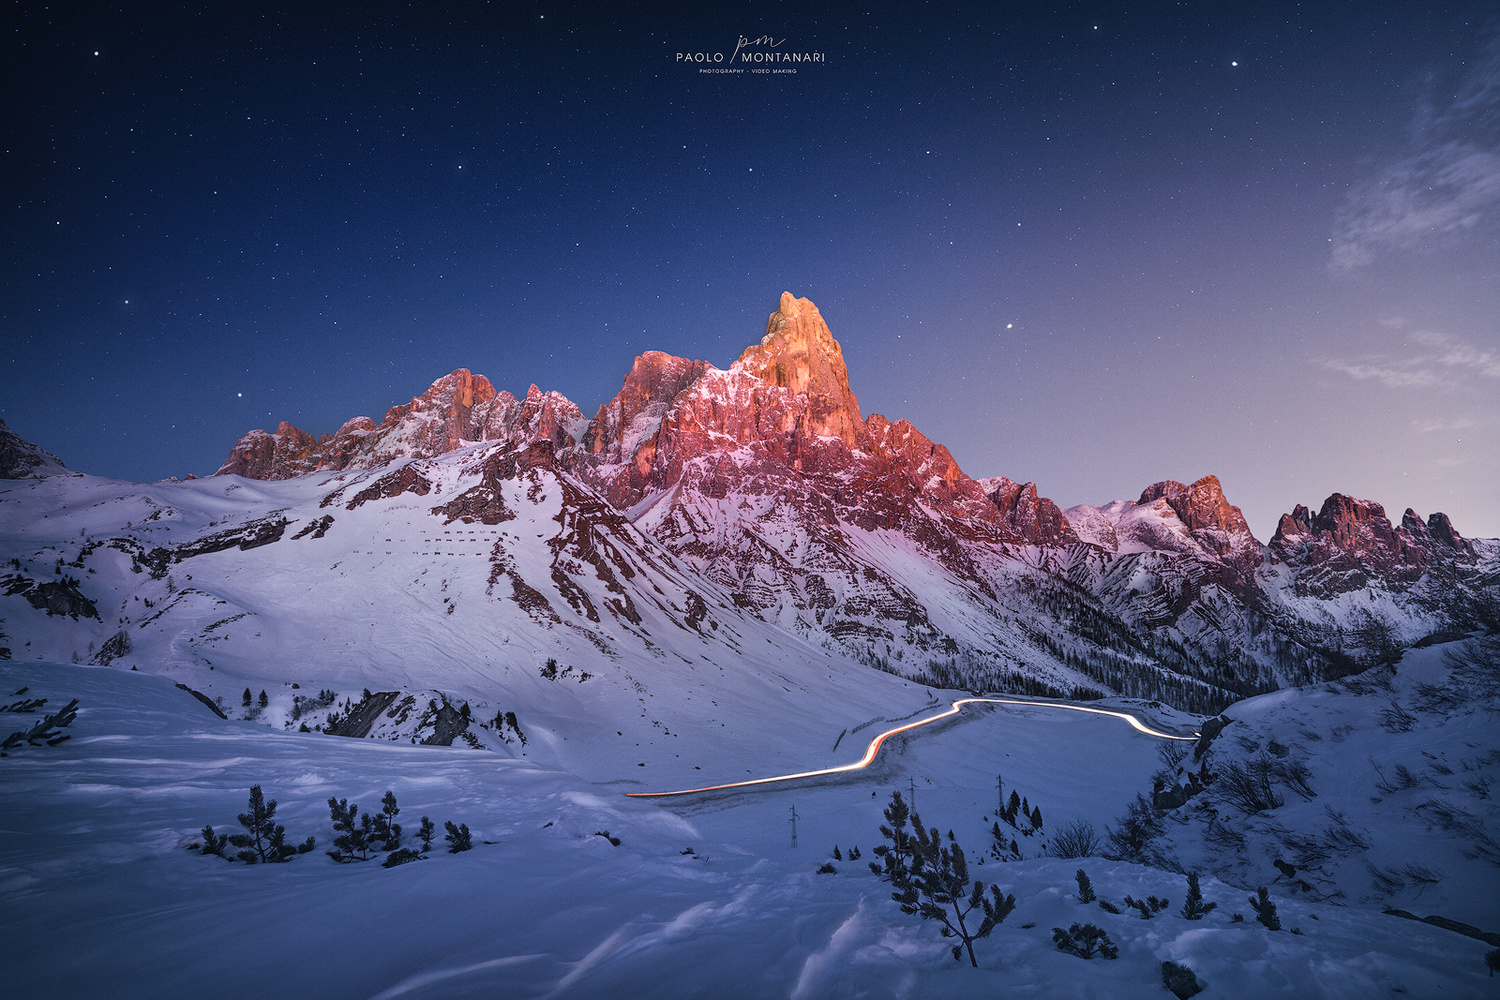 Passo Rolle by Paolo Montanari